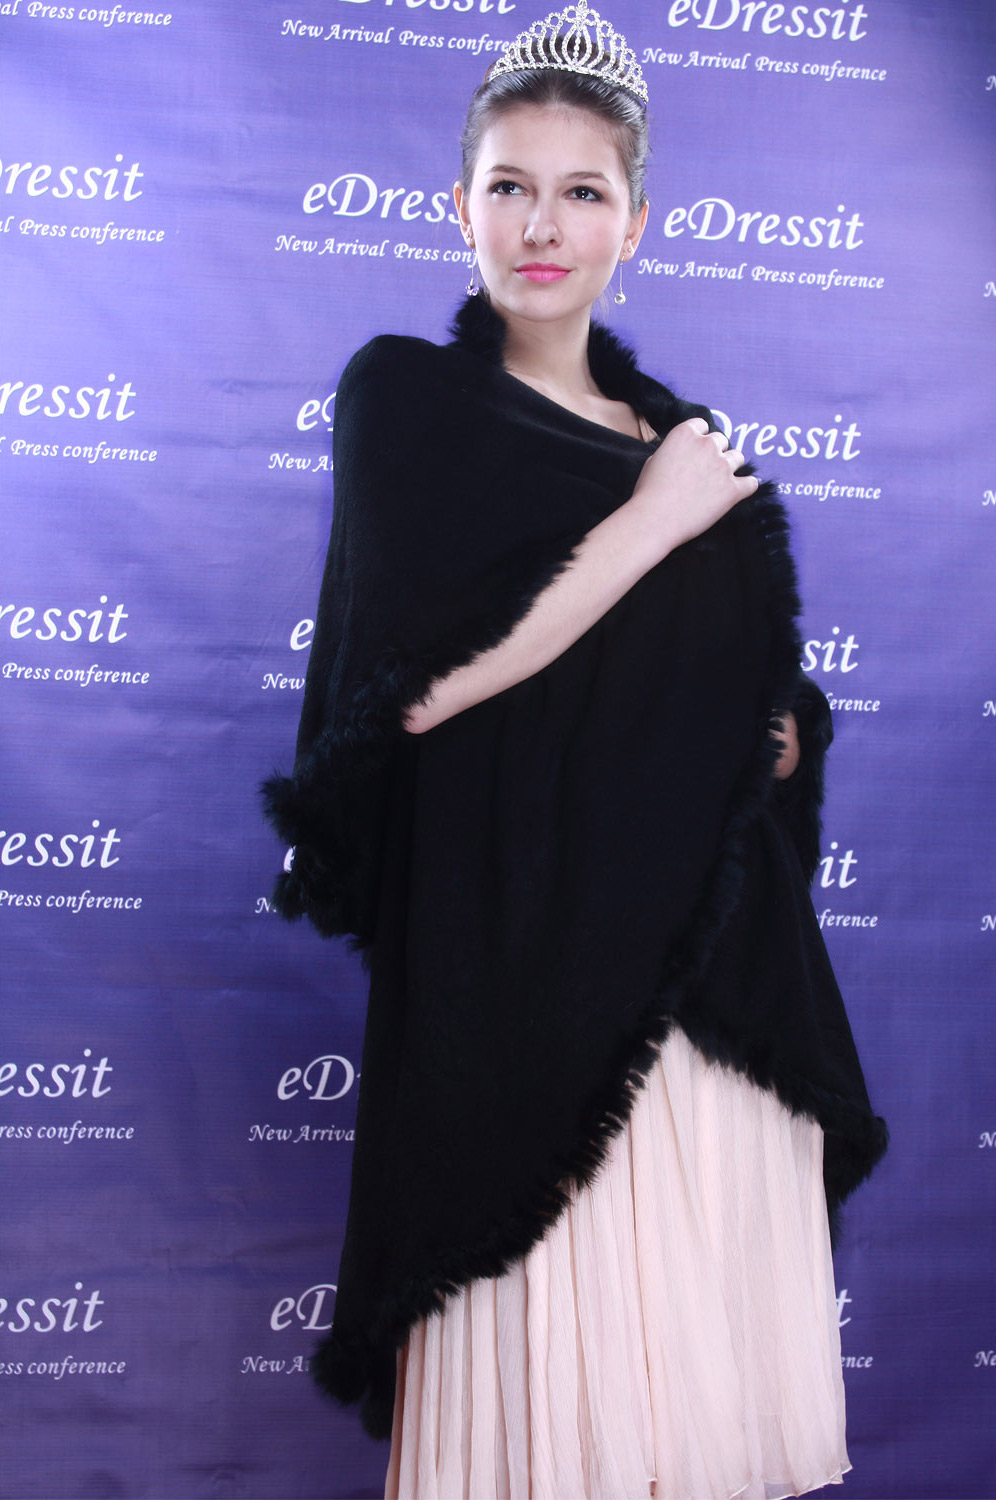 eDressit Black Shawl/Wrapa/Bolero (14090200)